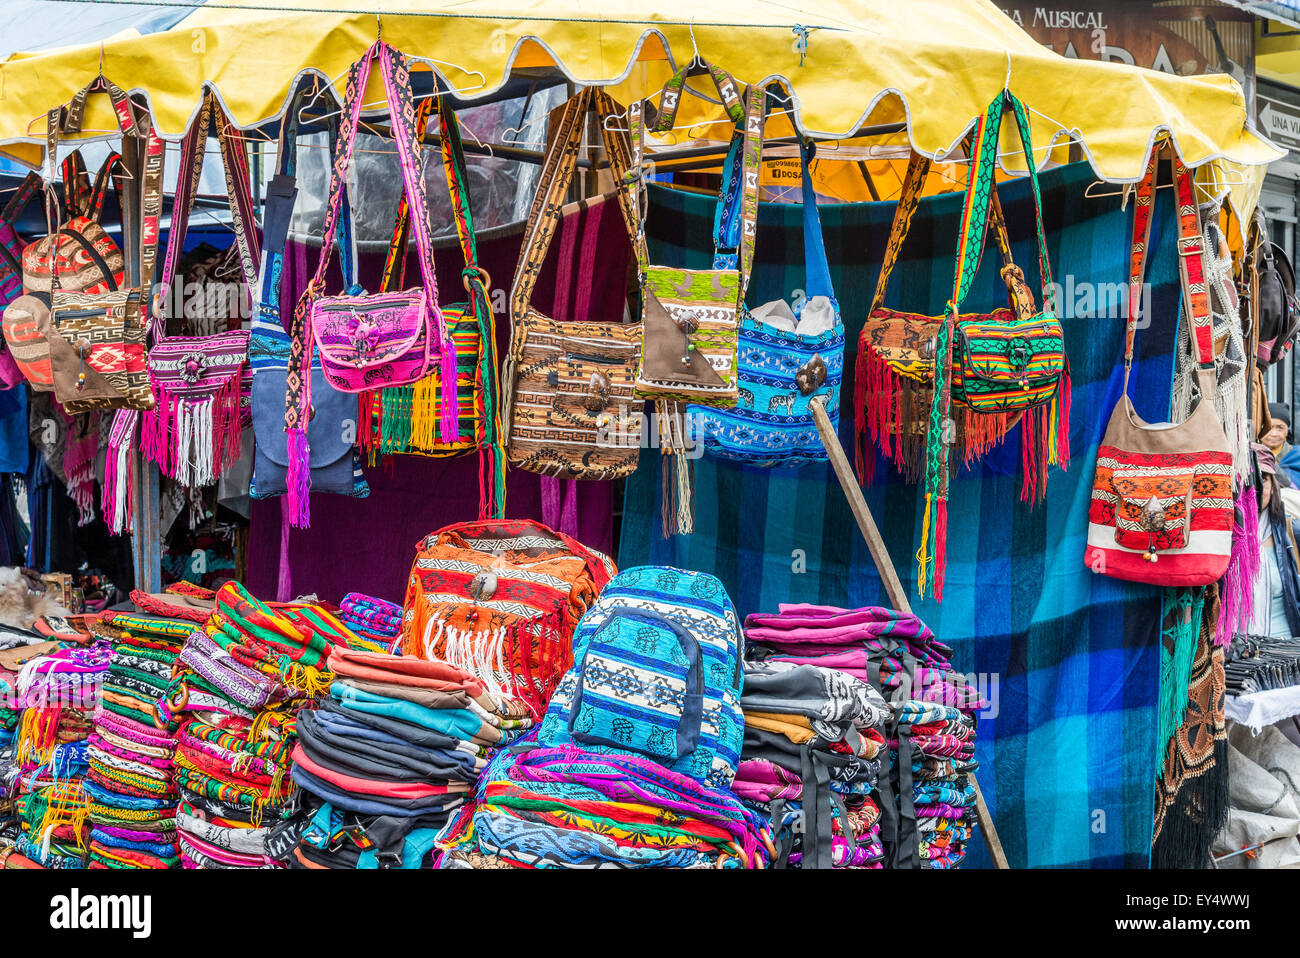 Colorful hand-crafted purses and bags for sale at local market. Otavalo, Ecuador. - Stock Image